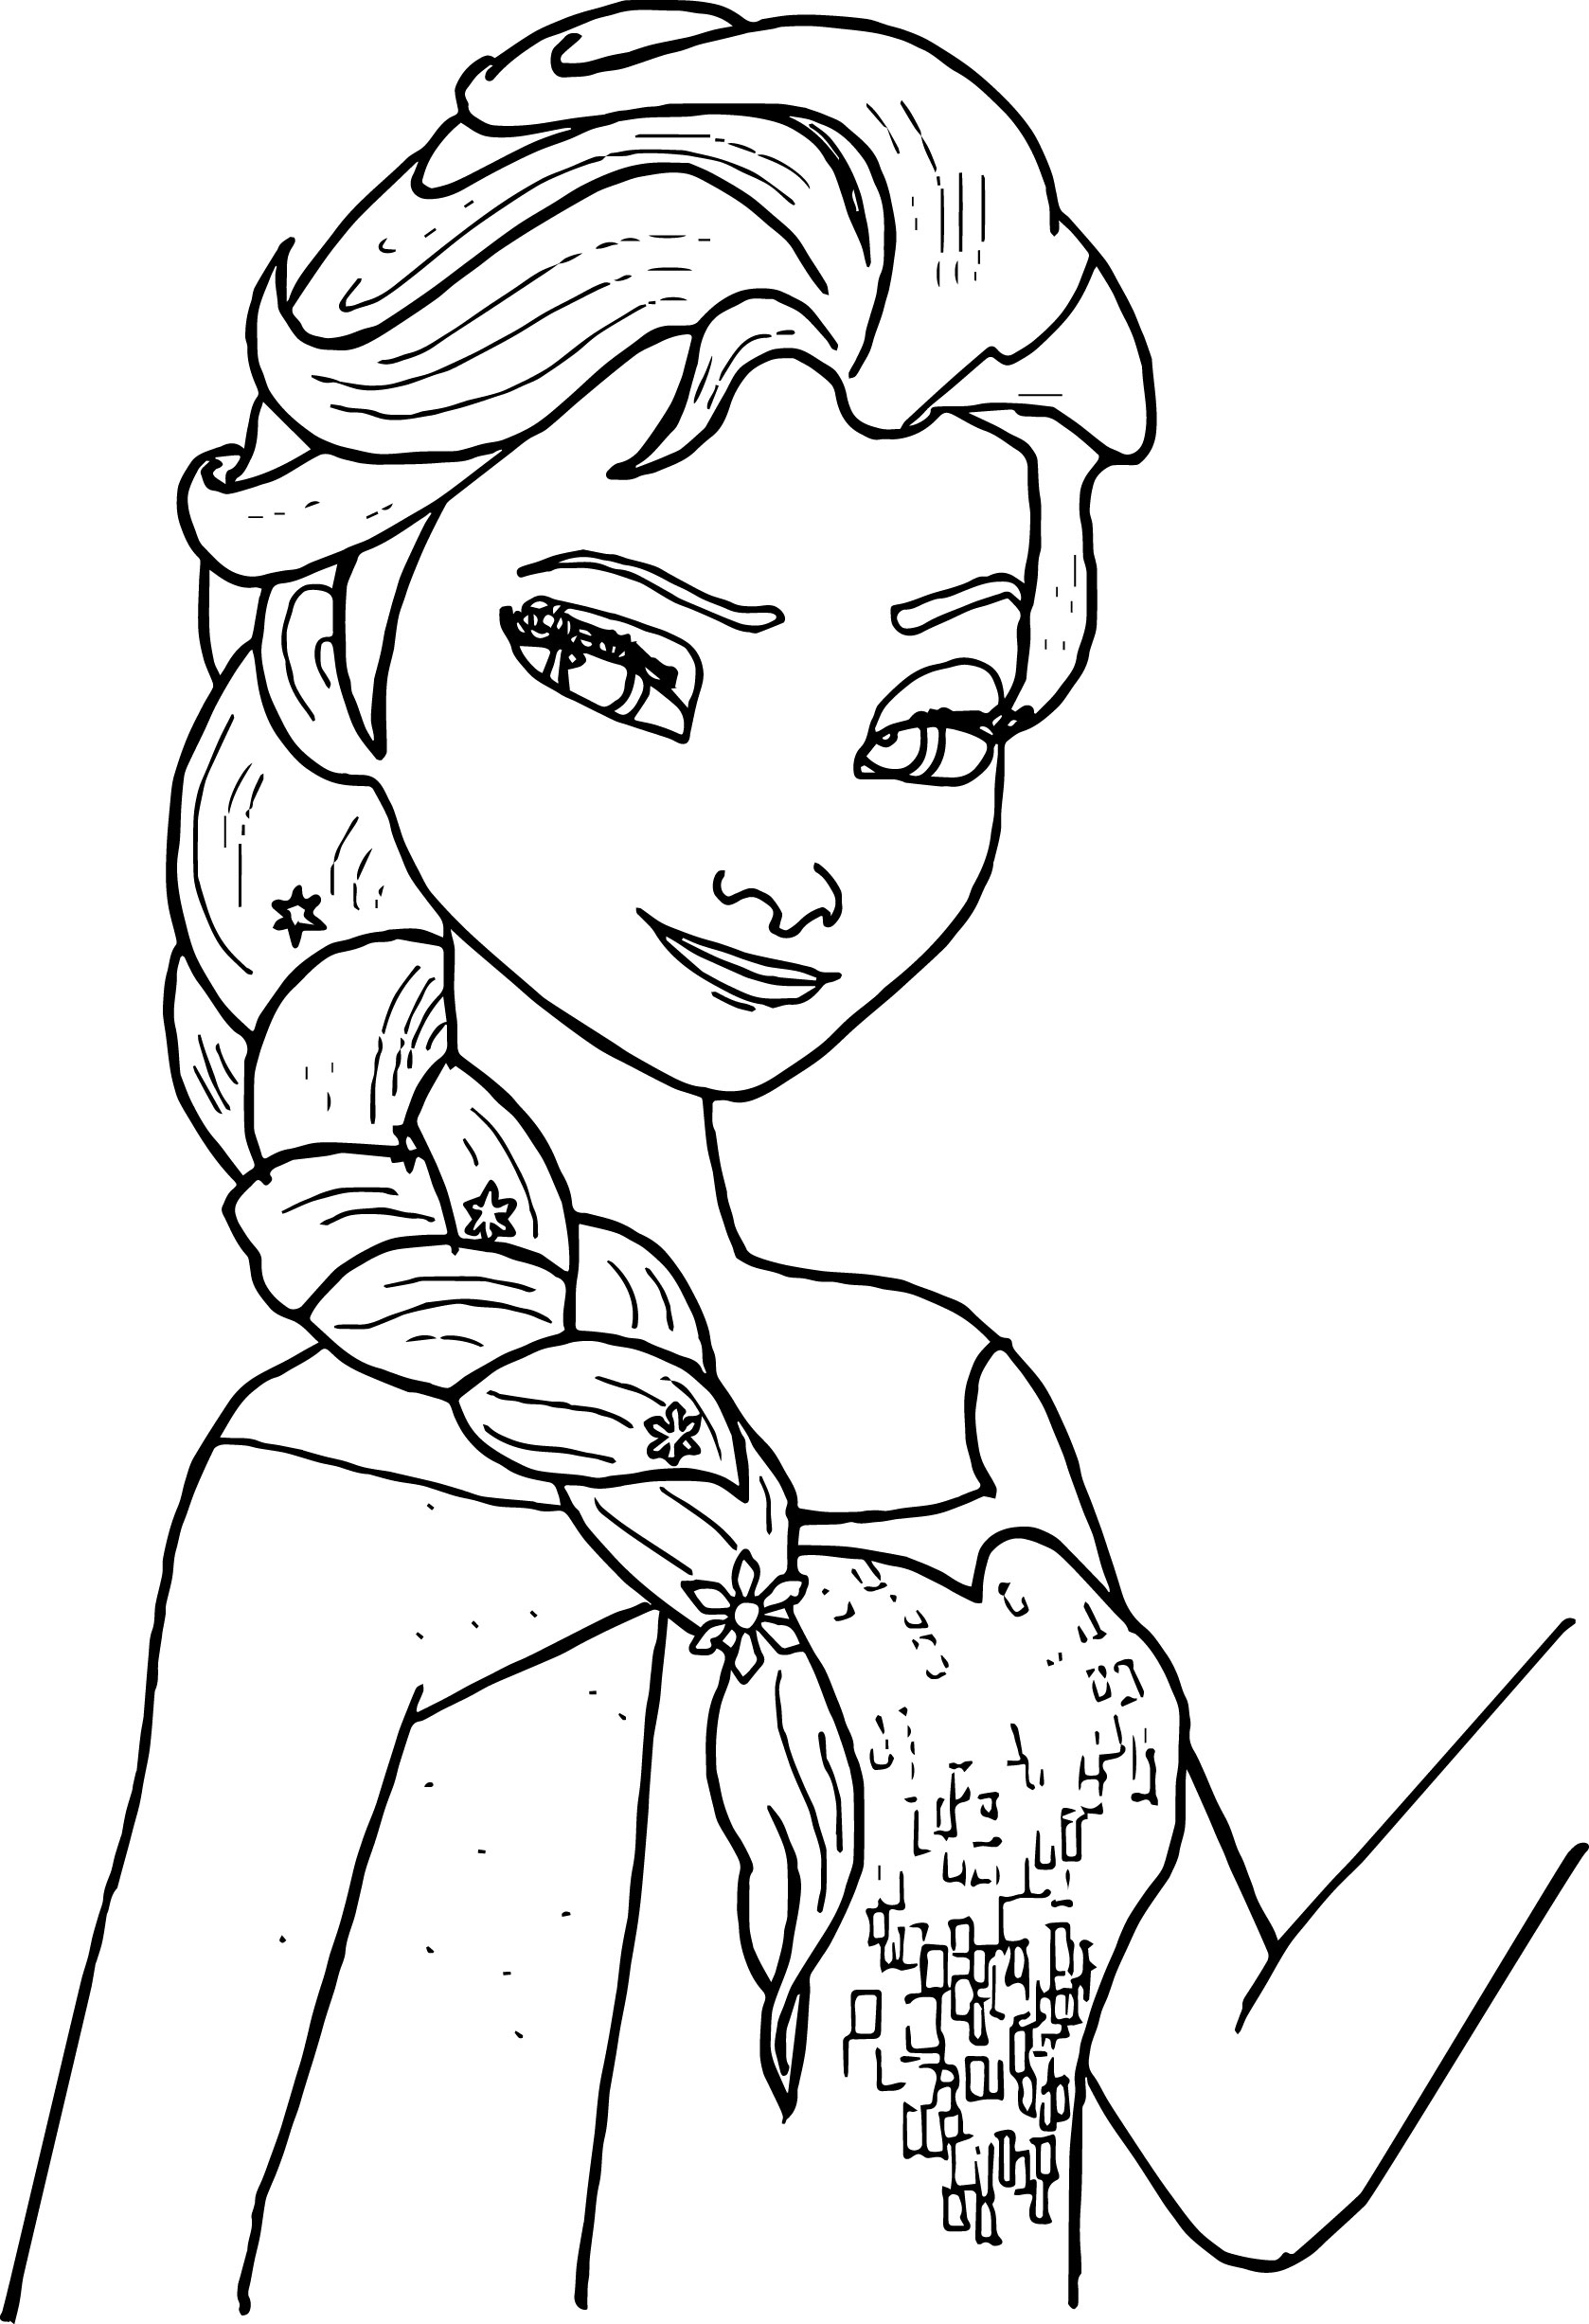 Coloring Pages For Kids Printable : Free printable elsa coloring pages for kids best